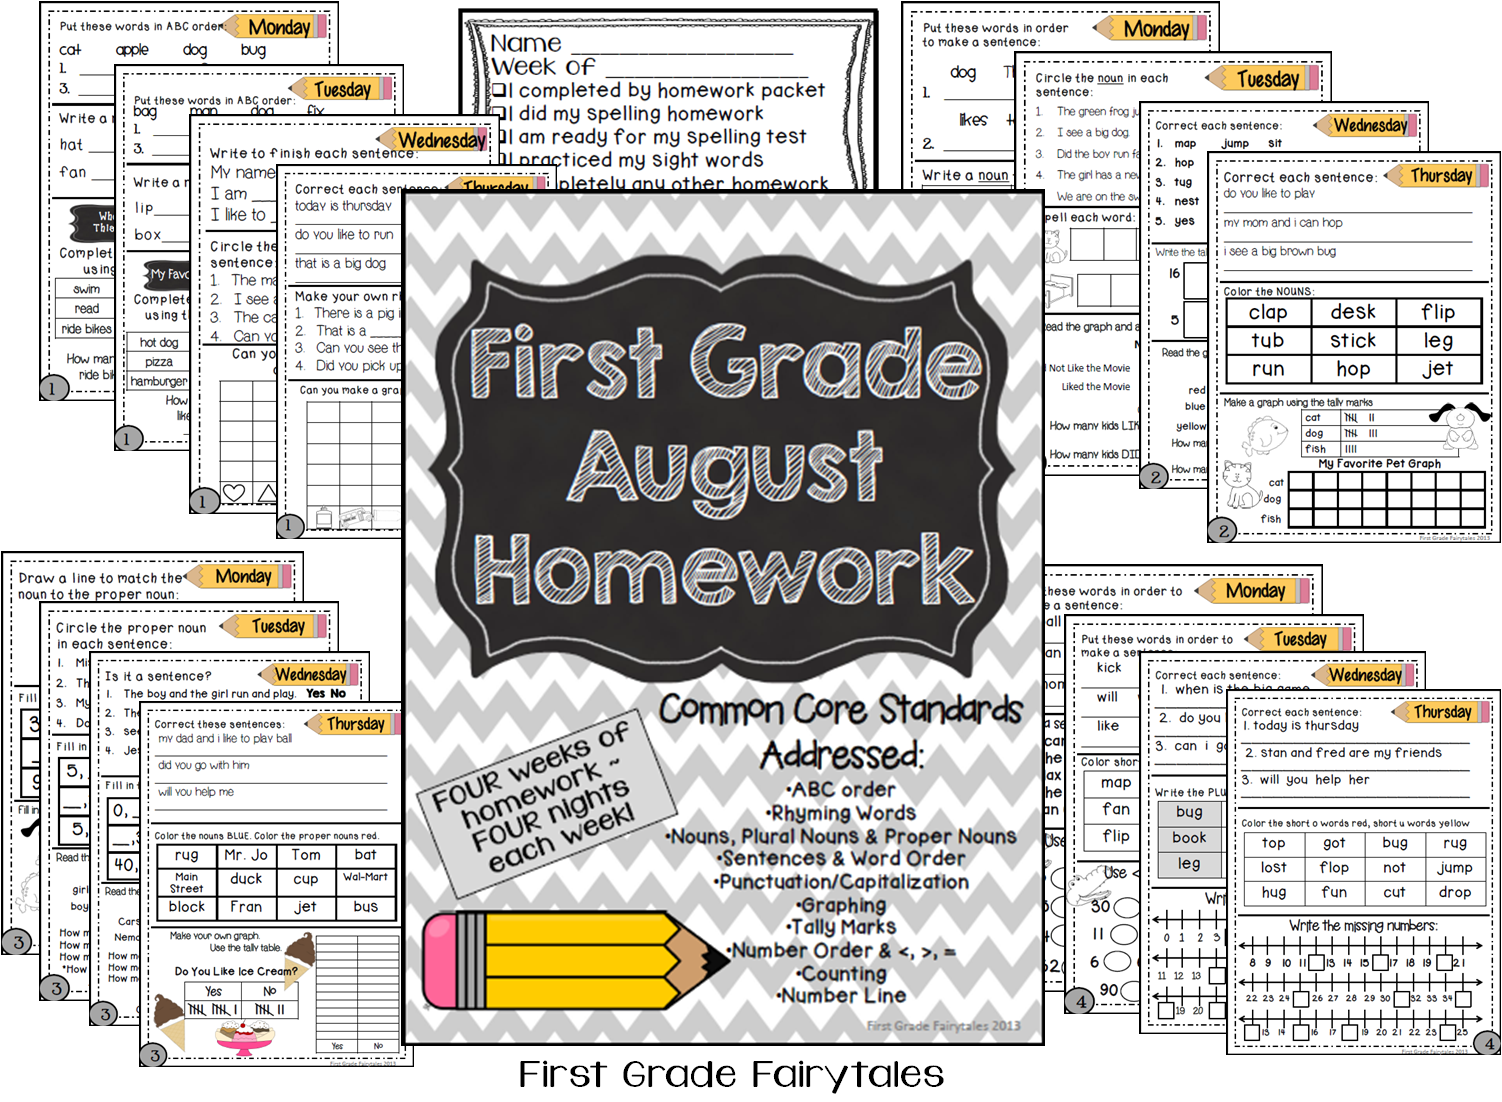 http://www.teacherspayteachers.com/Product/First-Grade-Common-Core-Homework-August-790308